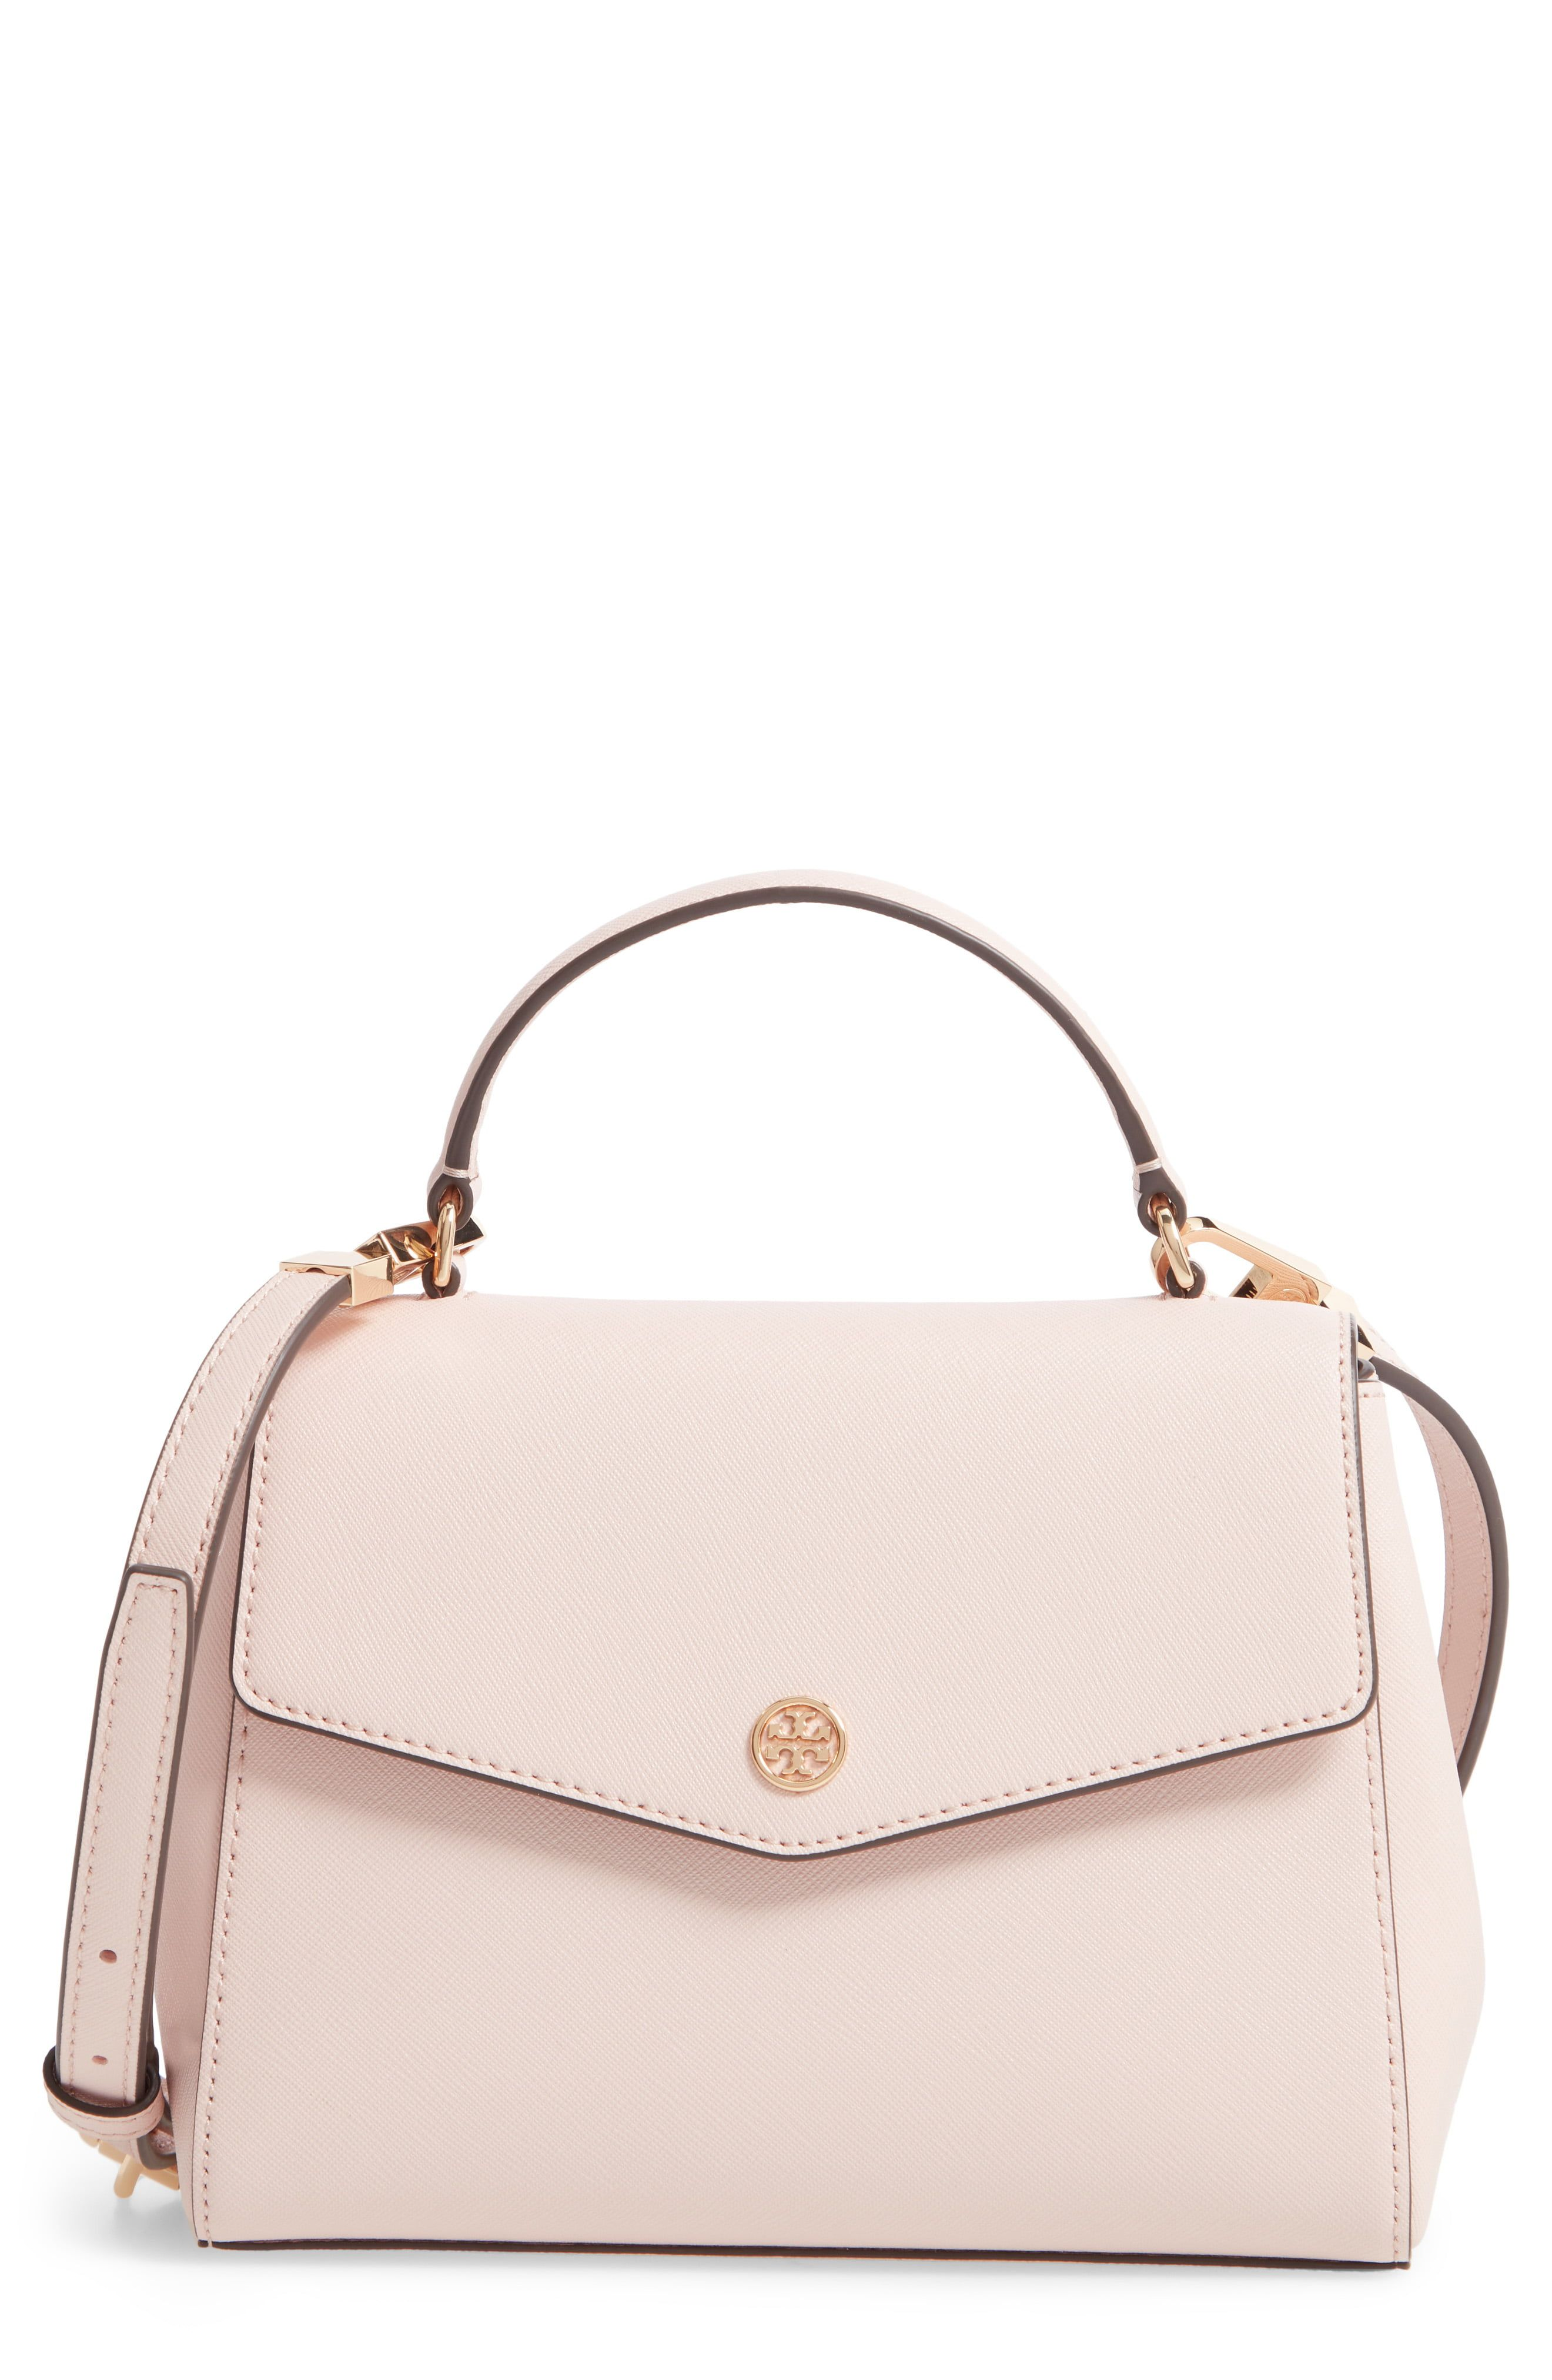 40d4a7fd Tory Burch Small Robinson Saffiano Leather Top Handle ...